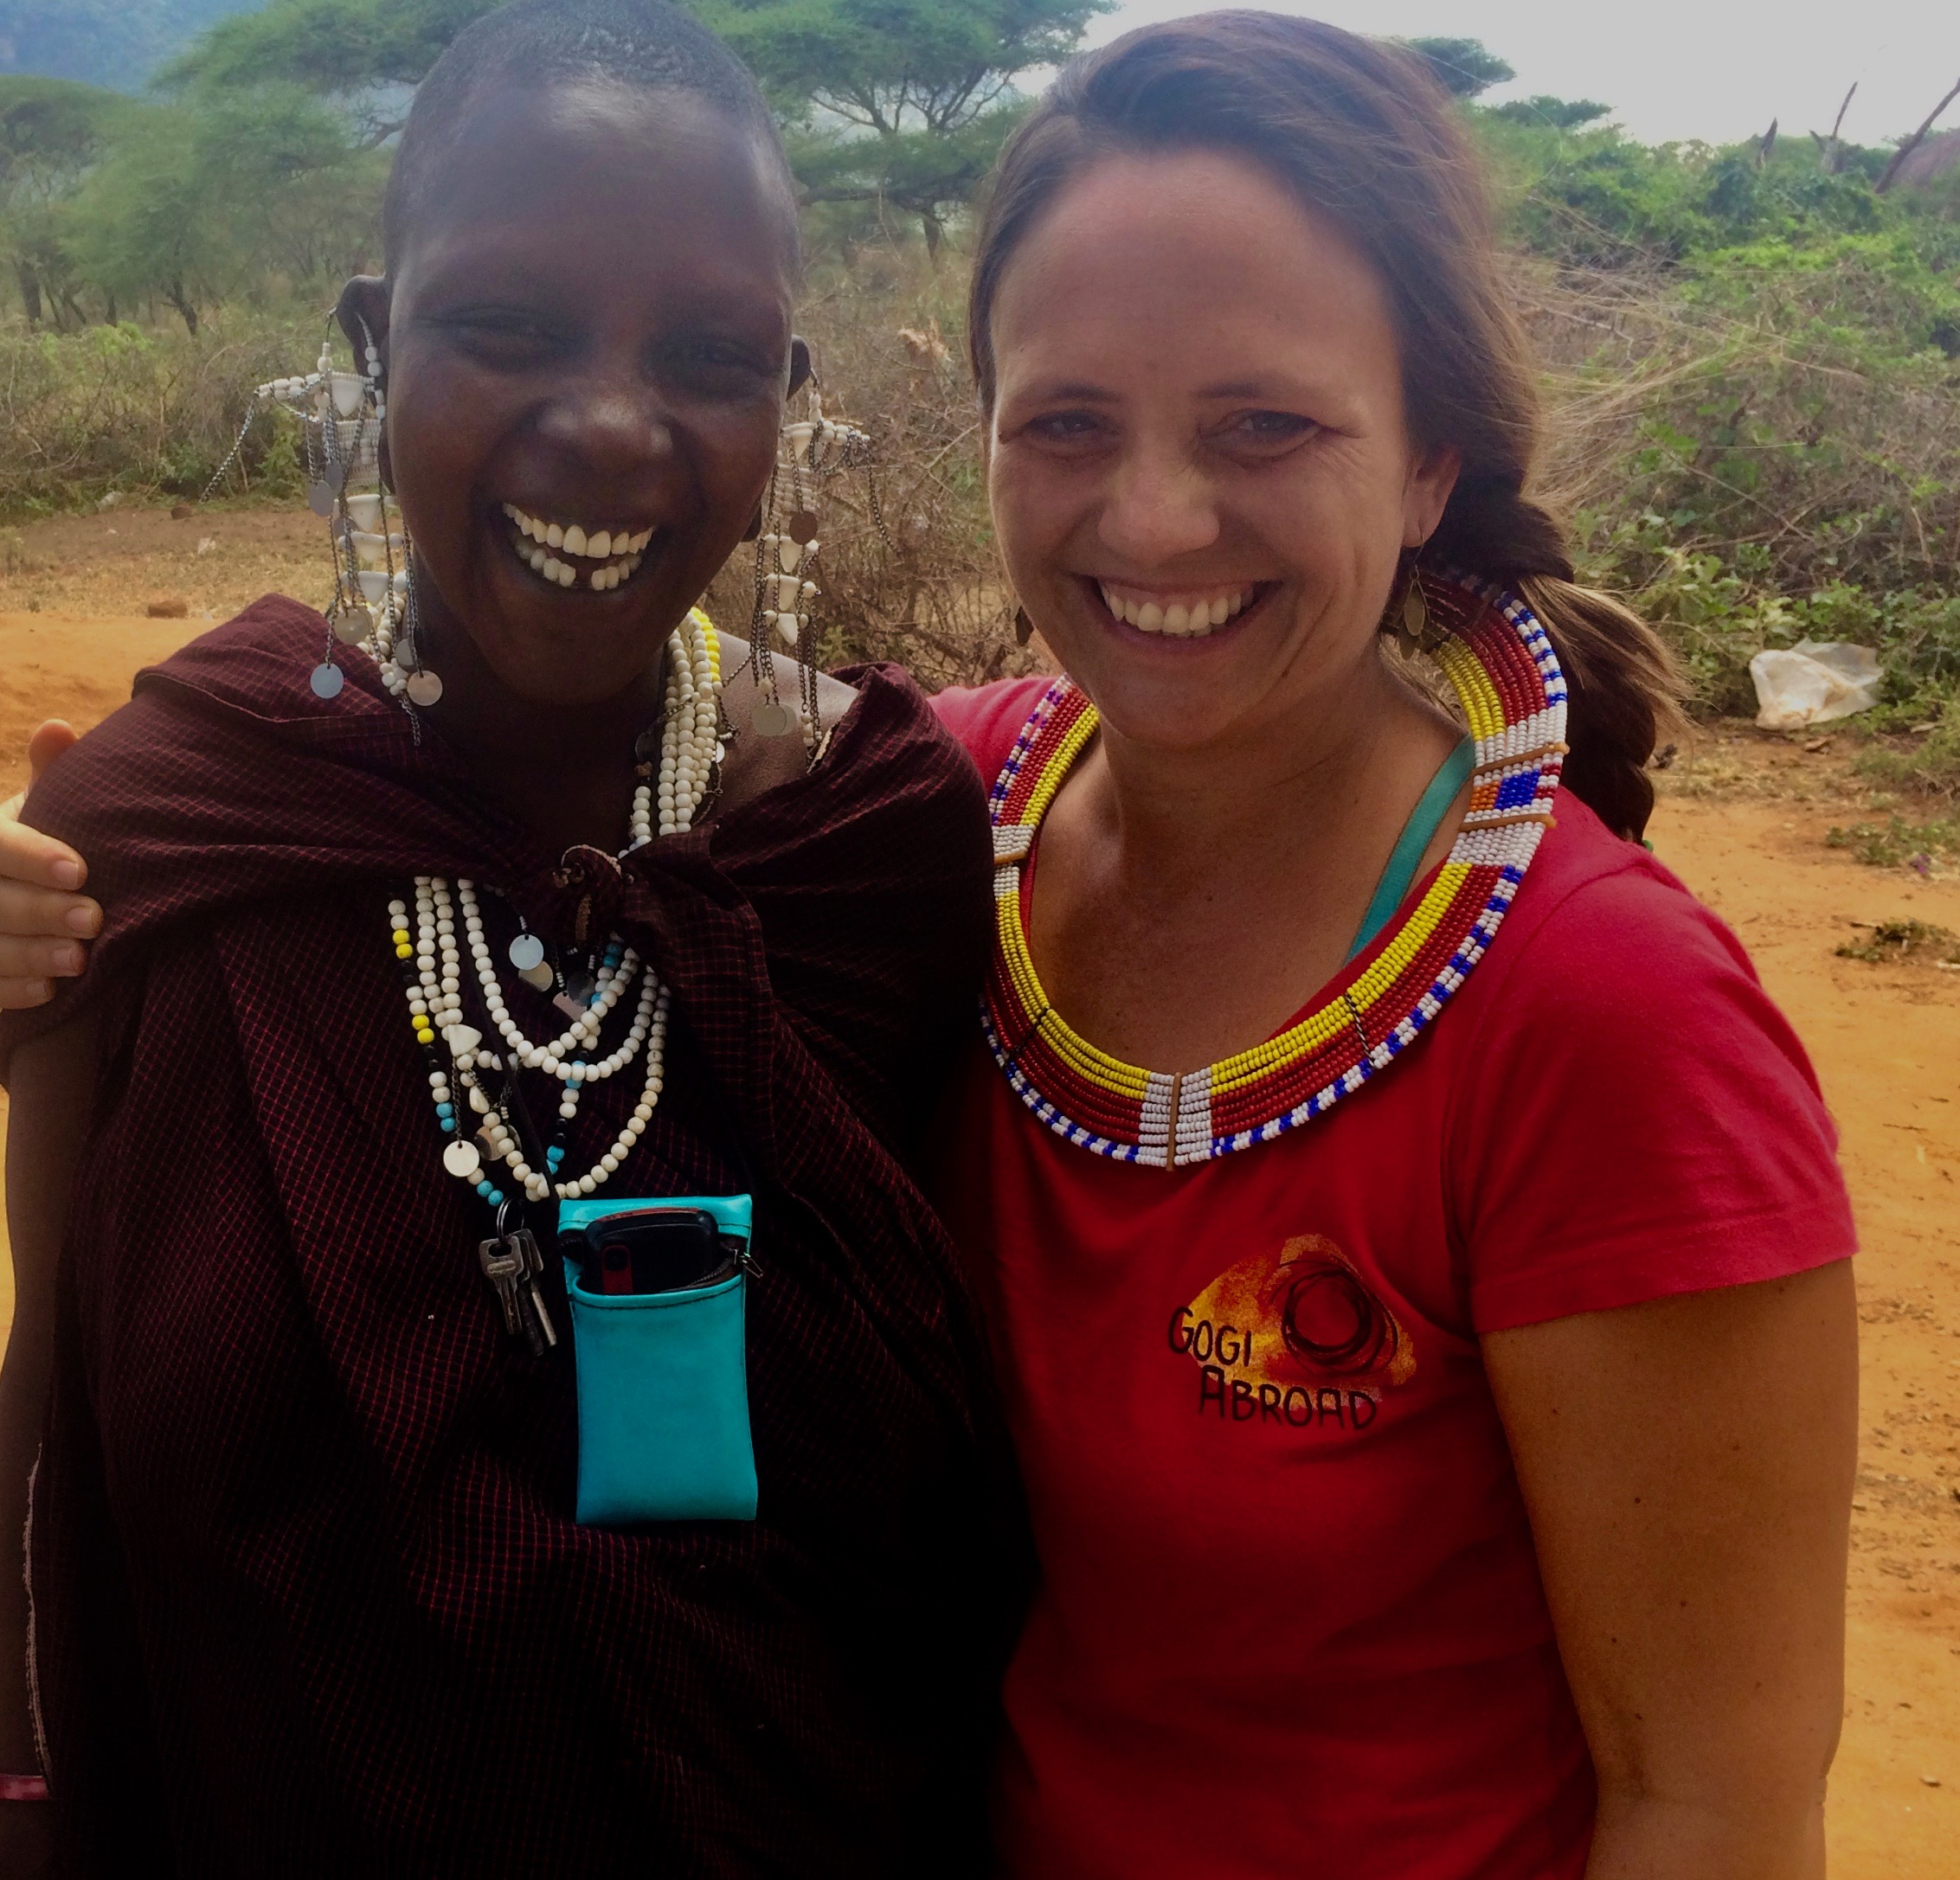 Liz Jackson, Gogi Abroad founder, with a friend and member of the the Beading Collective in Tanzania